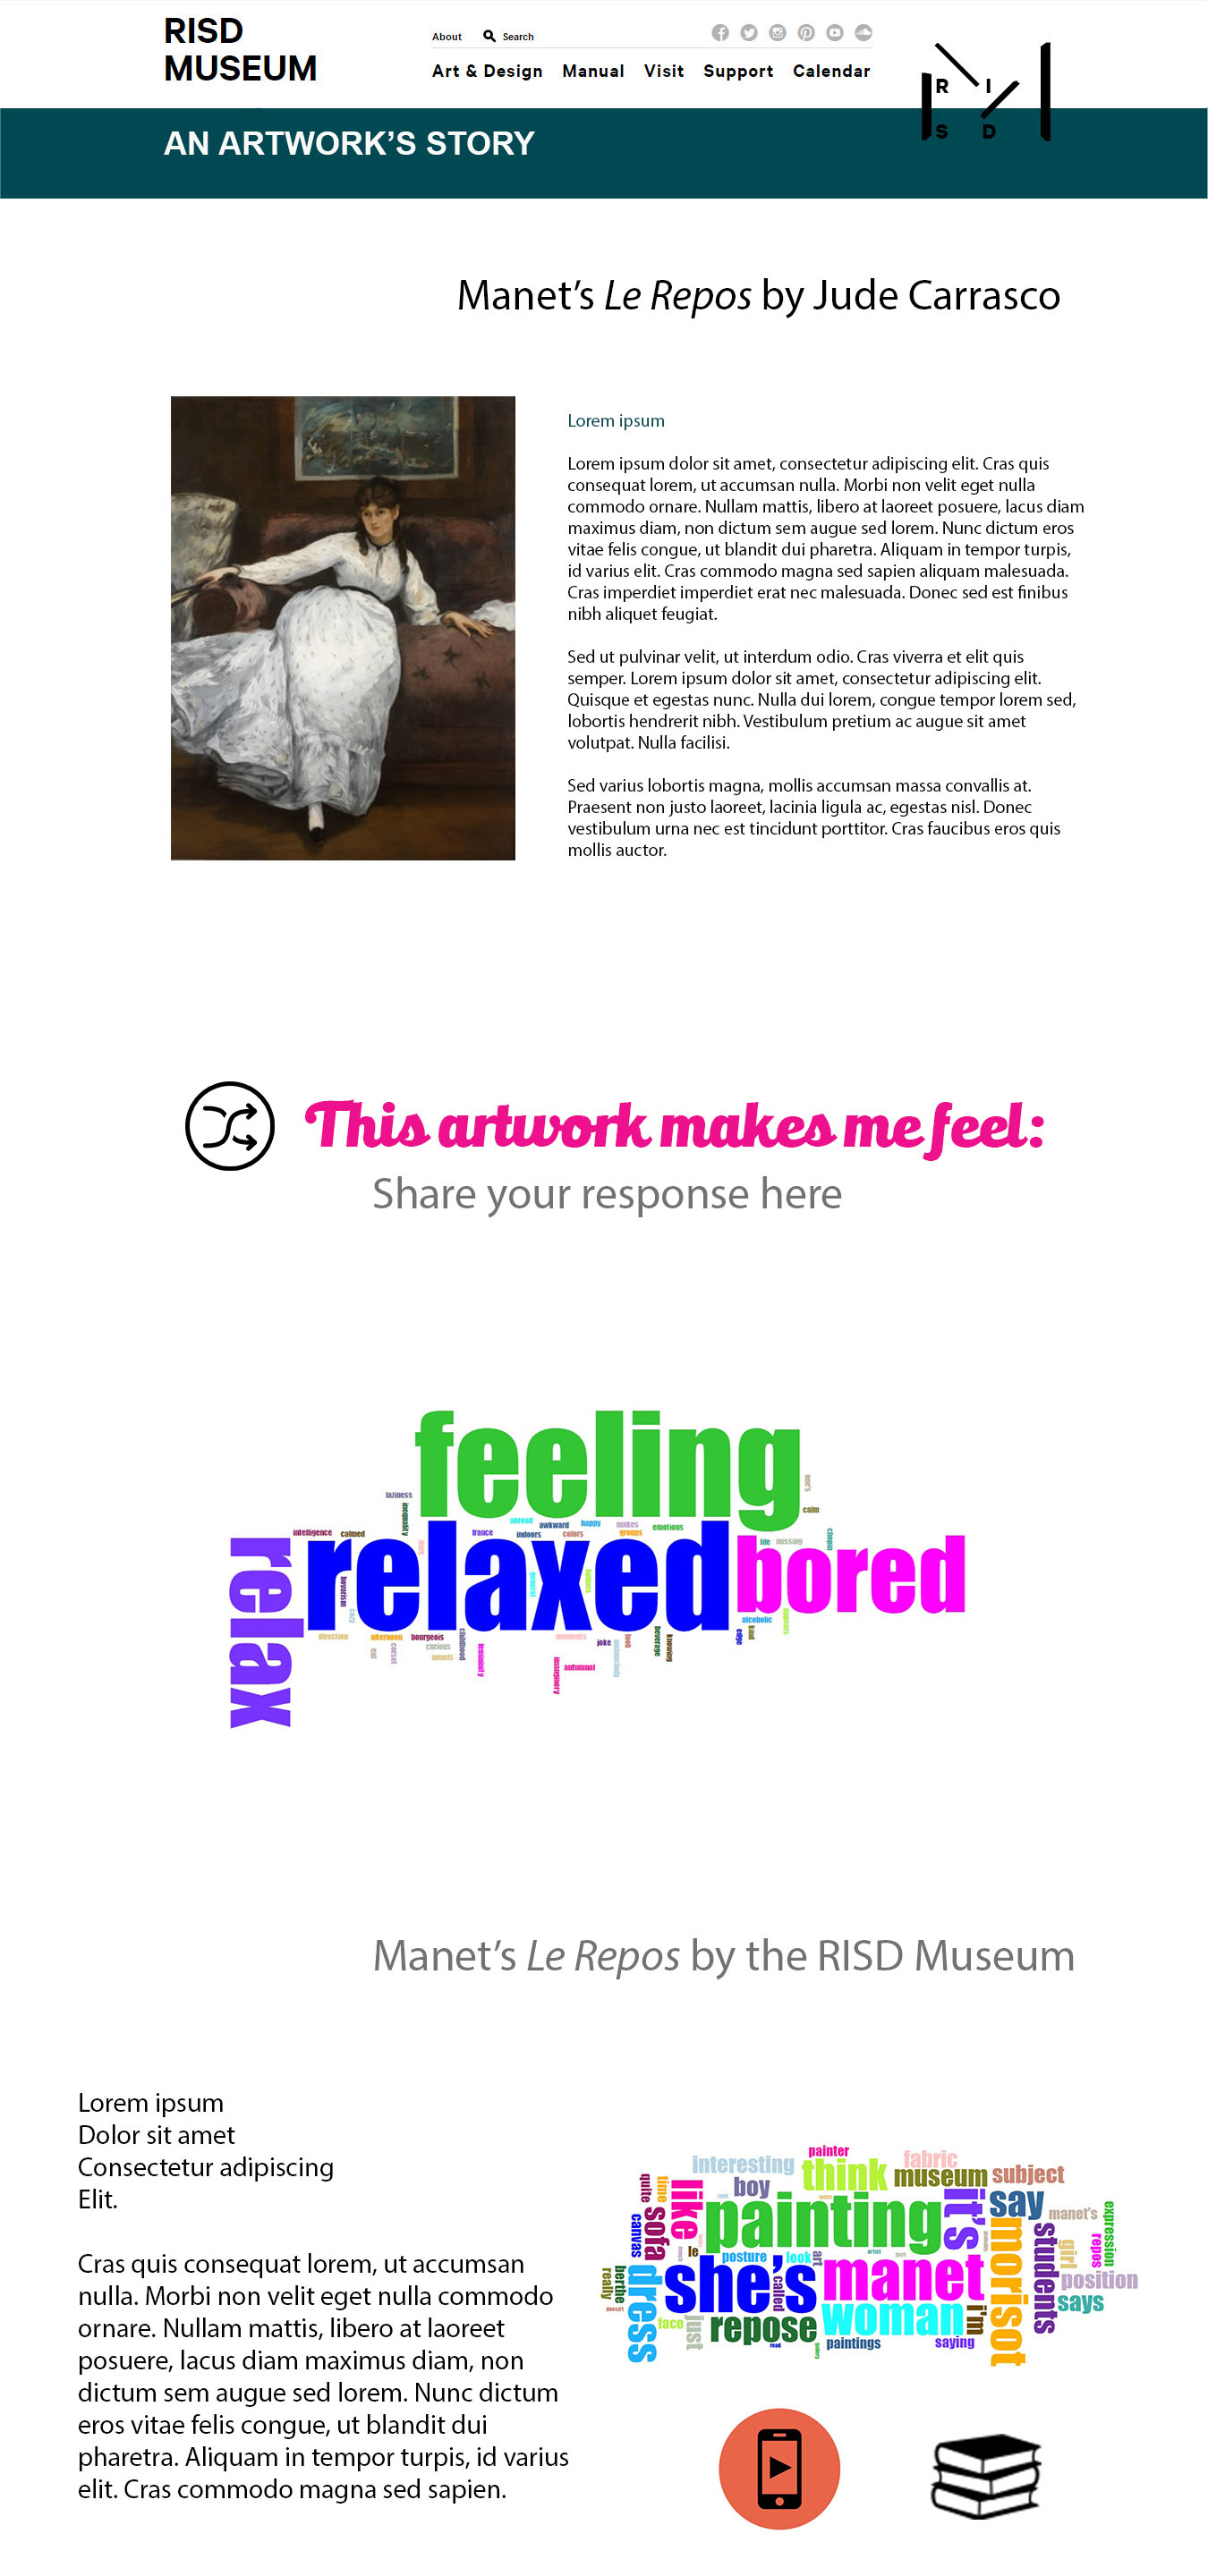 Manet's Le Repos digital space mock-up